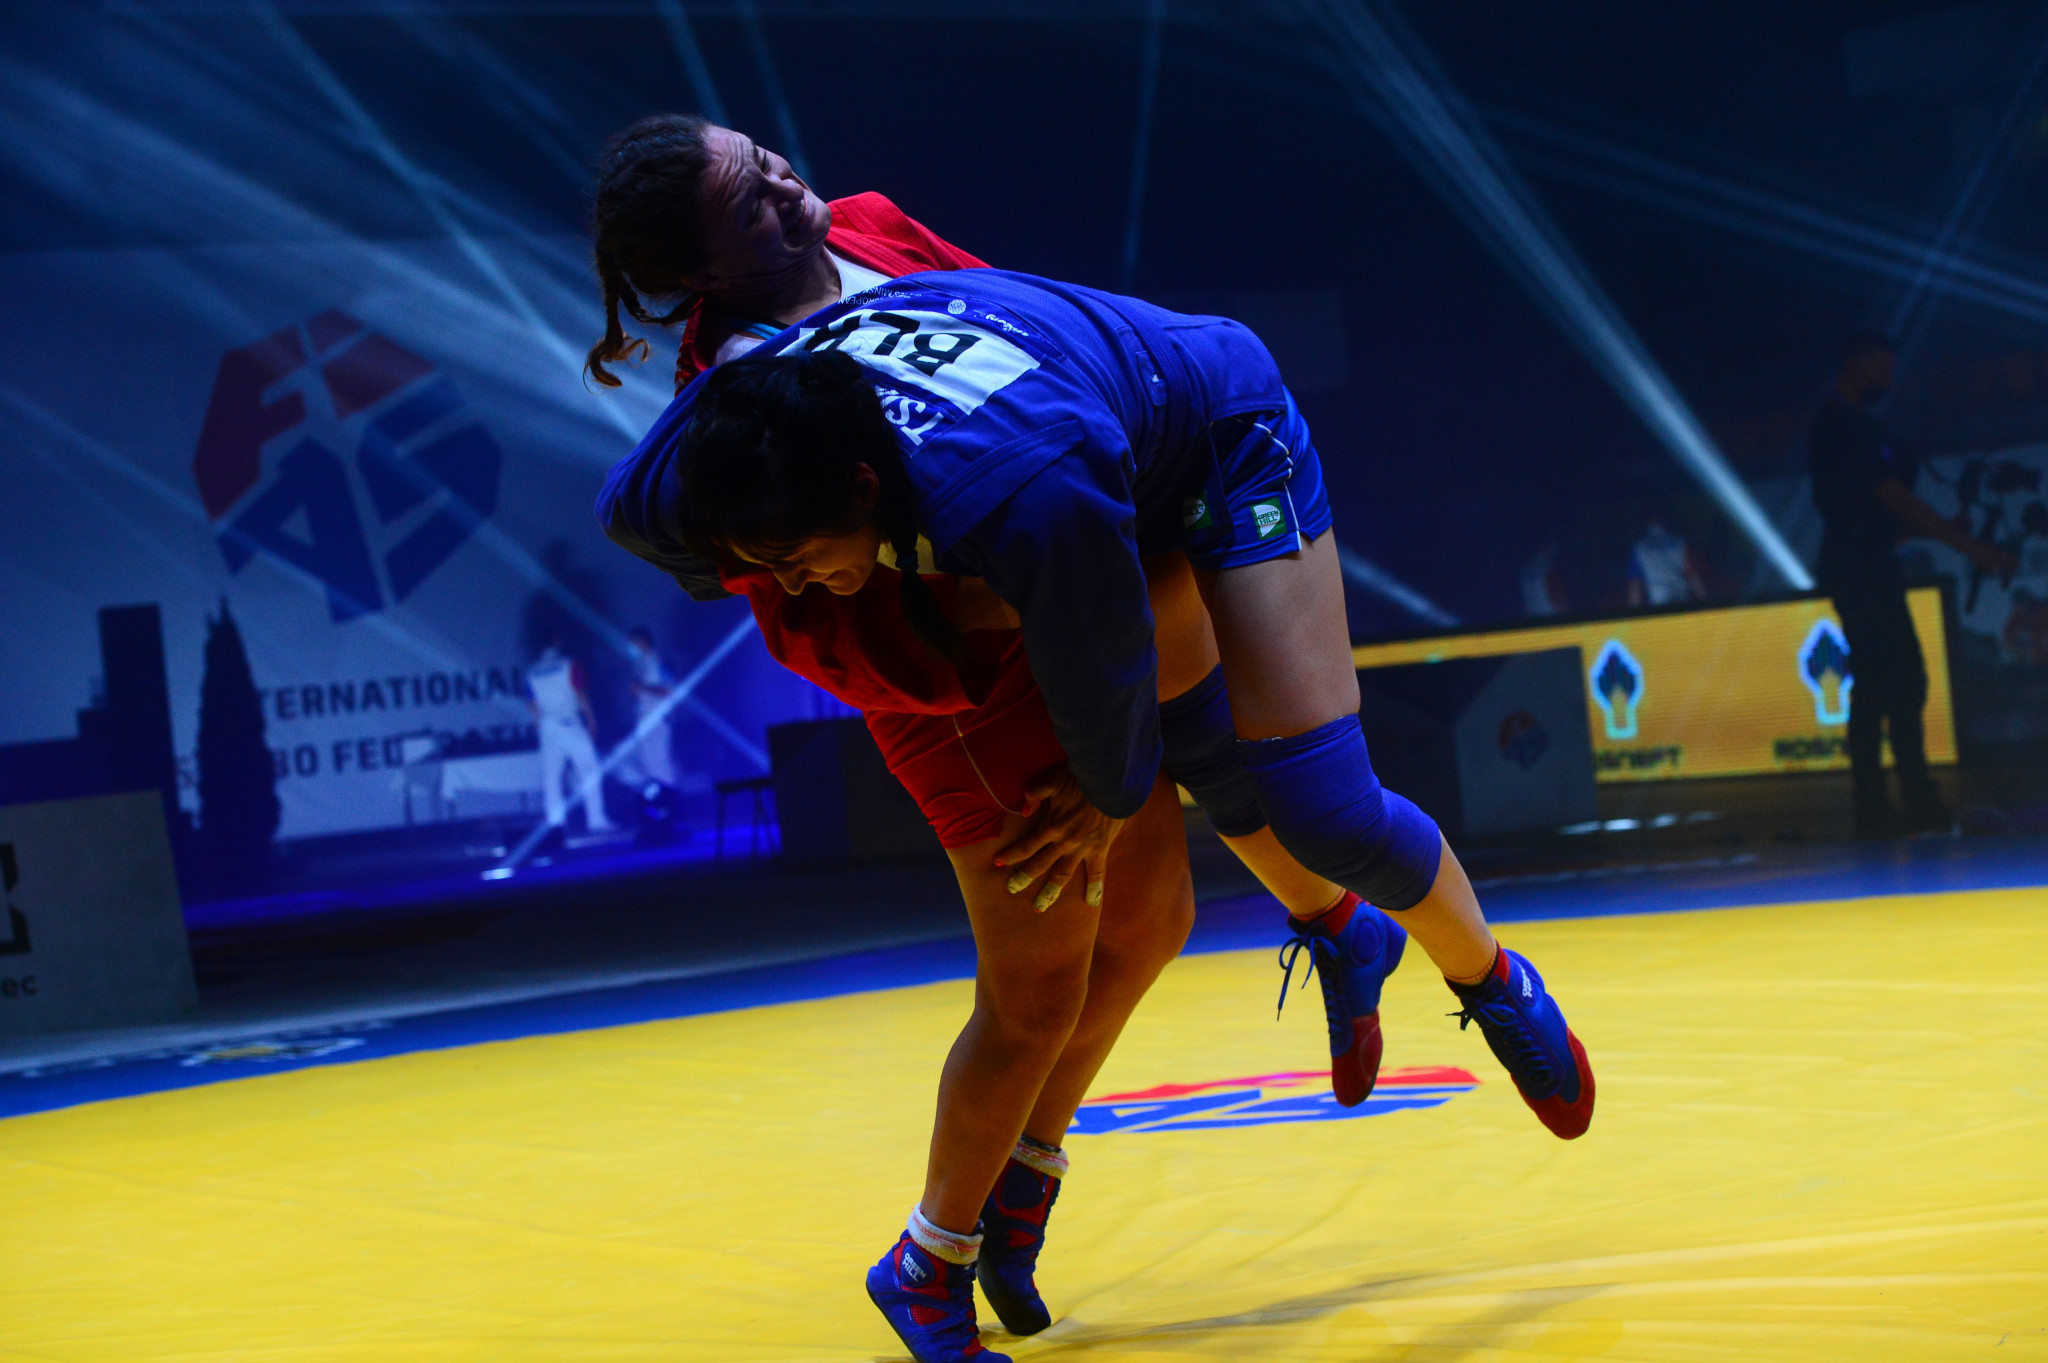 Bulgaria's Mariya Oriashkova, in red, defended her world title successfully in the women's 80kg ©FIAS